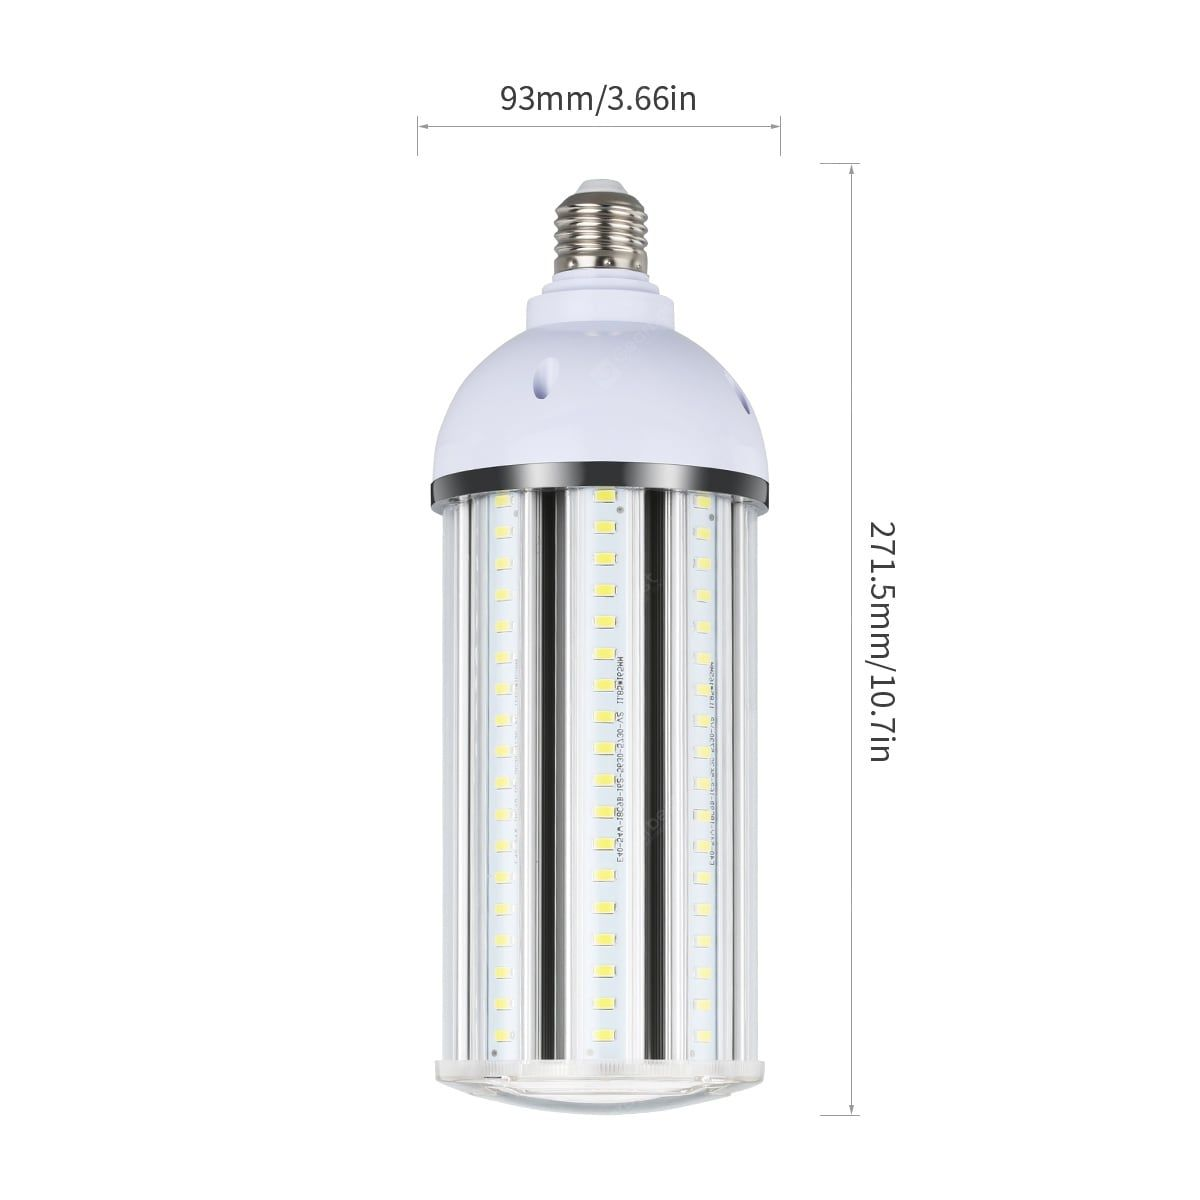 Lampwin 54w Led Corn Light Bulb Lm E27 Base K Cool